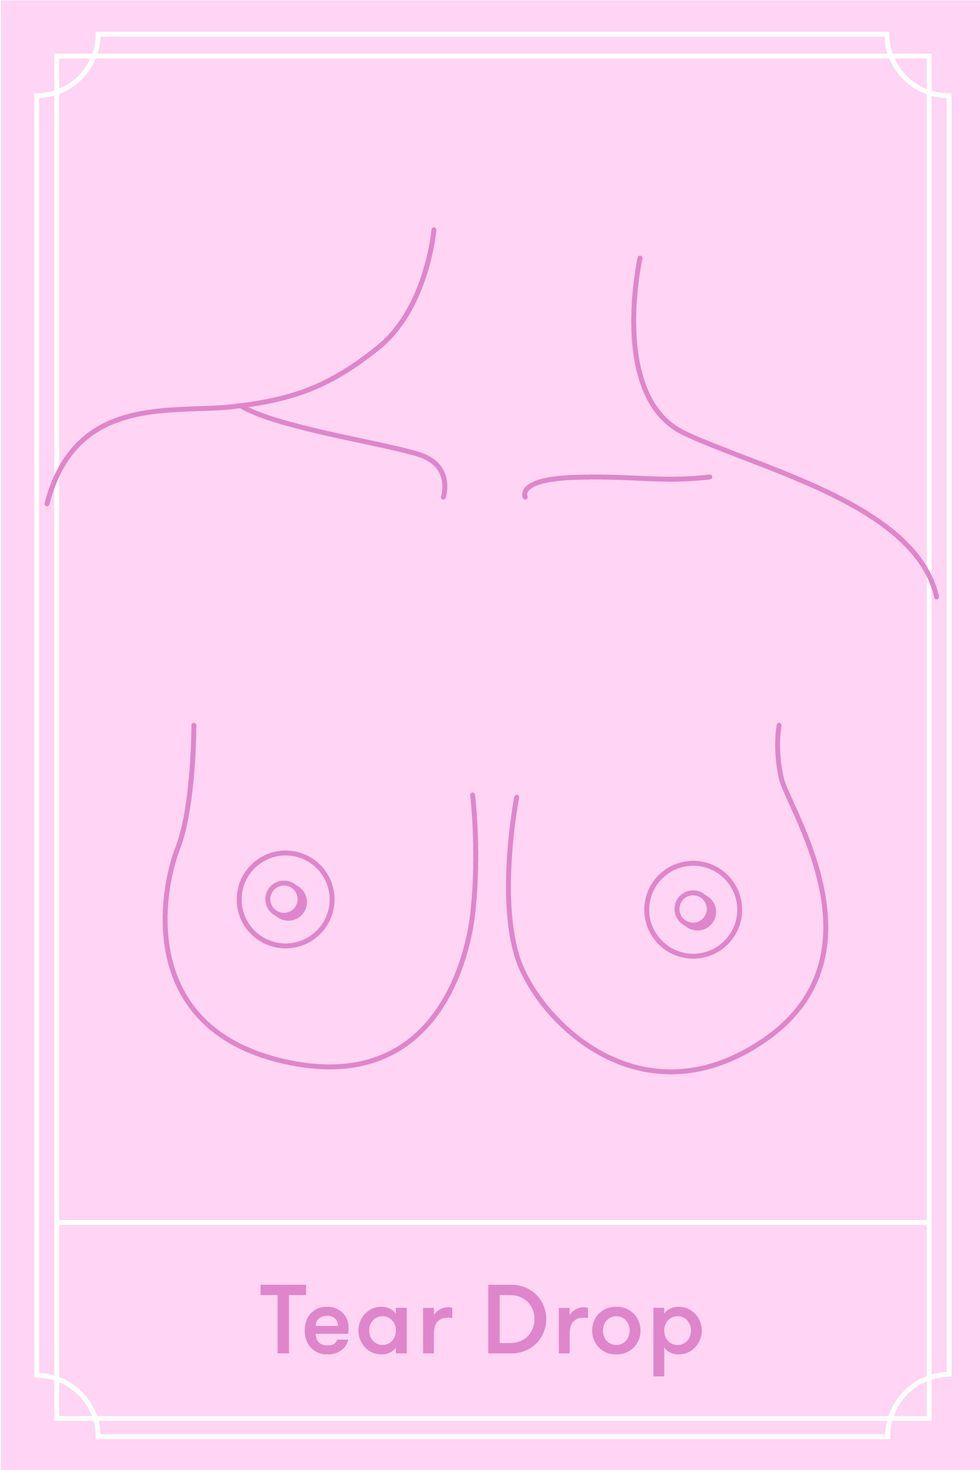 Pictures of different types of womens breasts